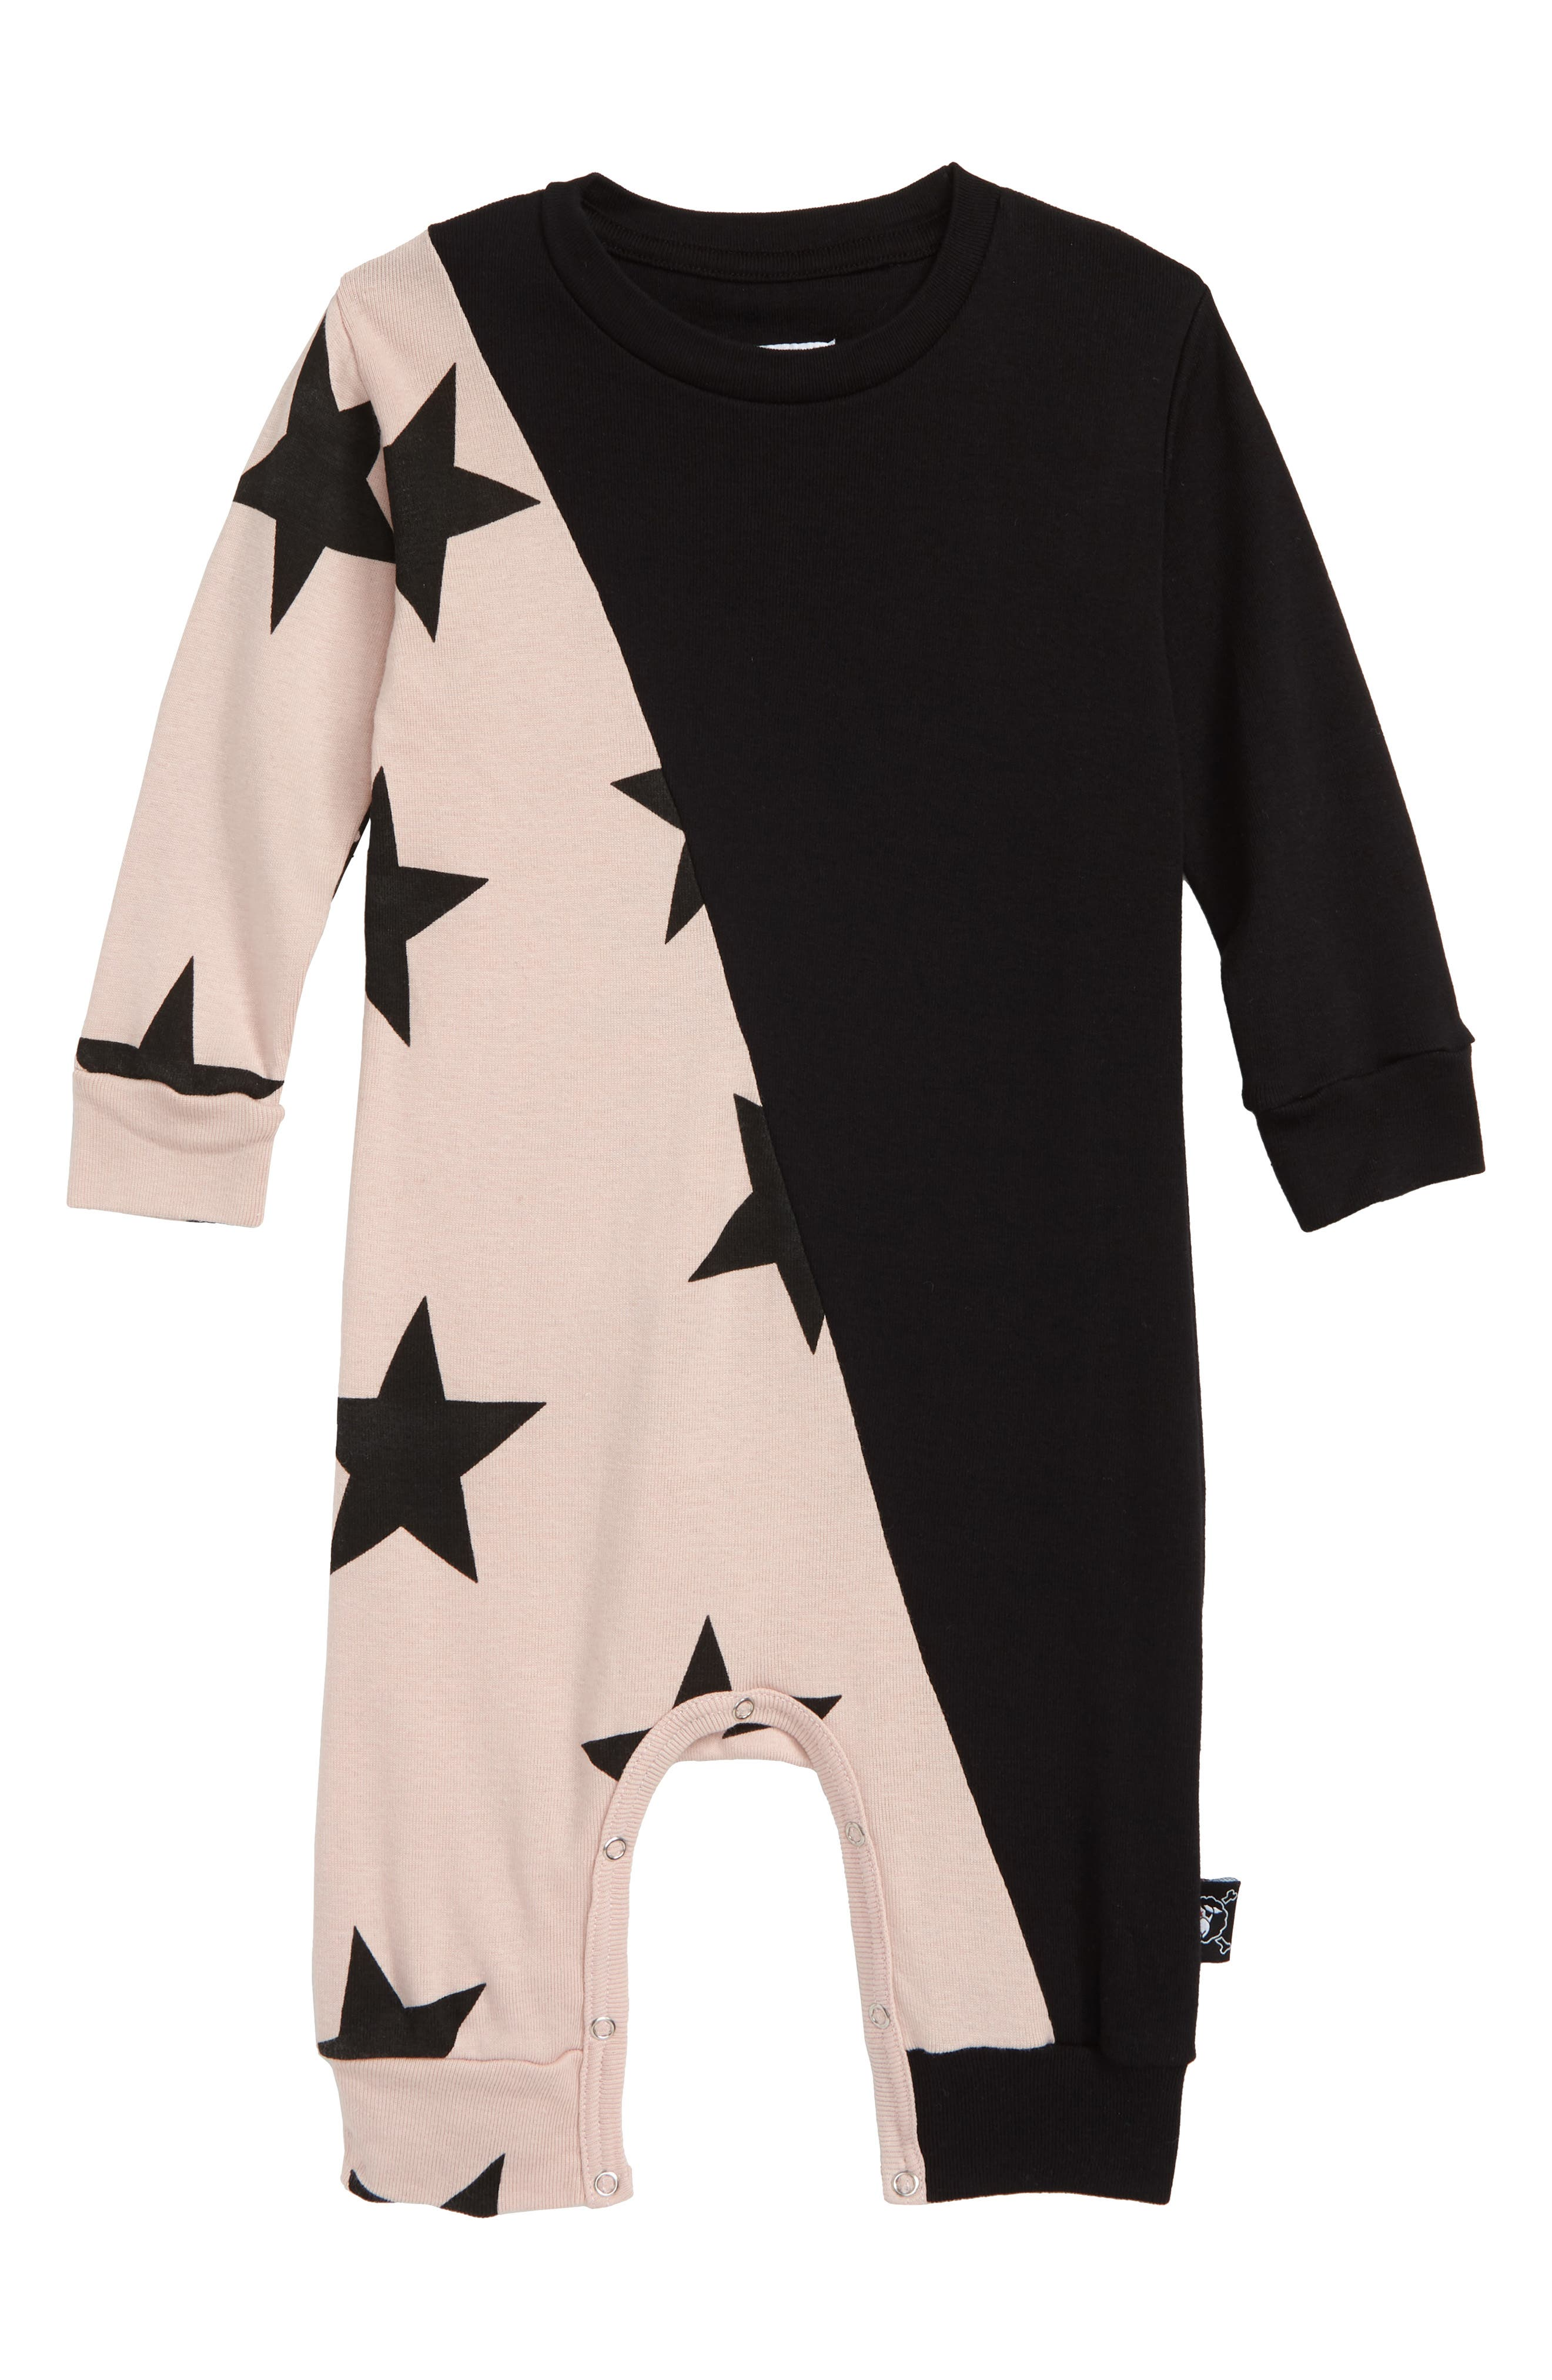 1/2 and 1/2 Star Romper,                         Main,                         color, 650